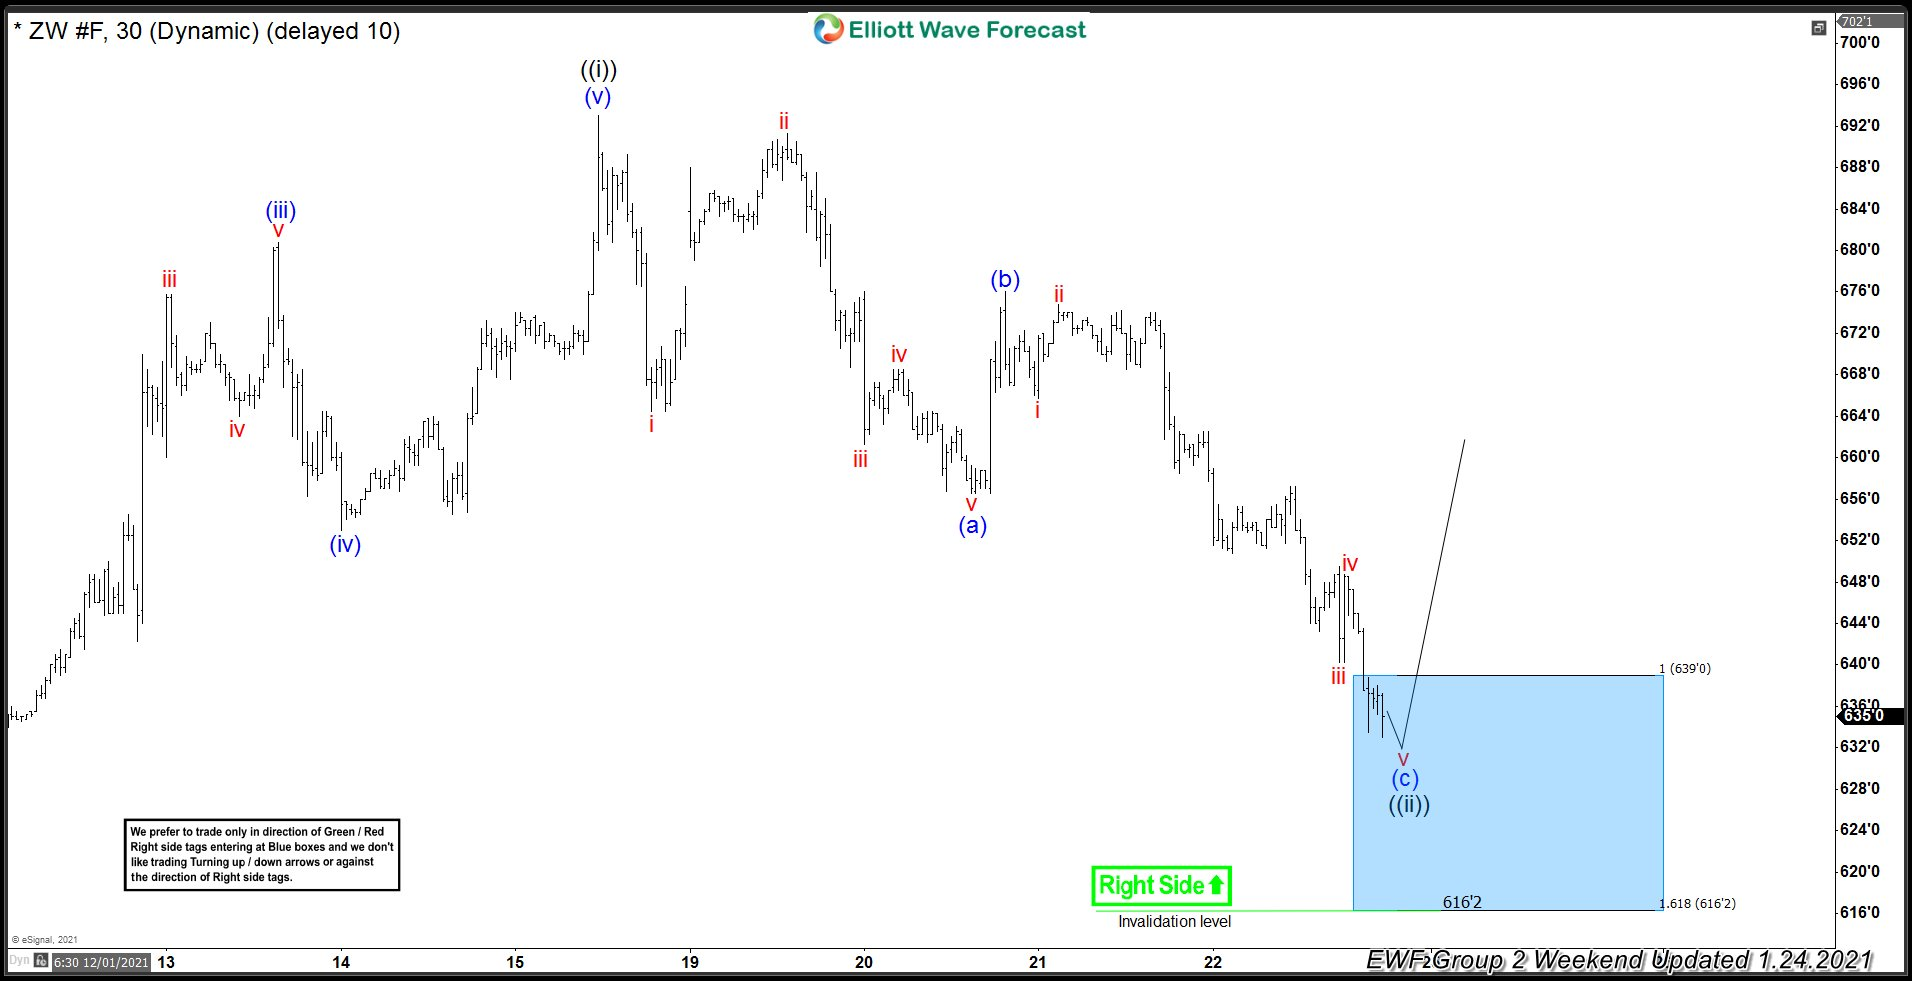 Wheat ( $ZW_F ) Buying The Dips At The Blue Box Area